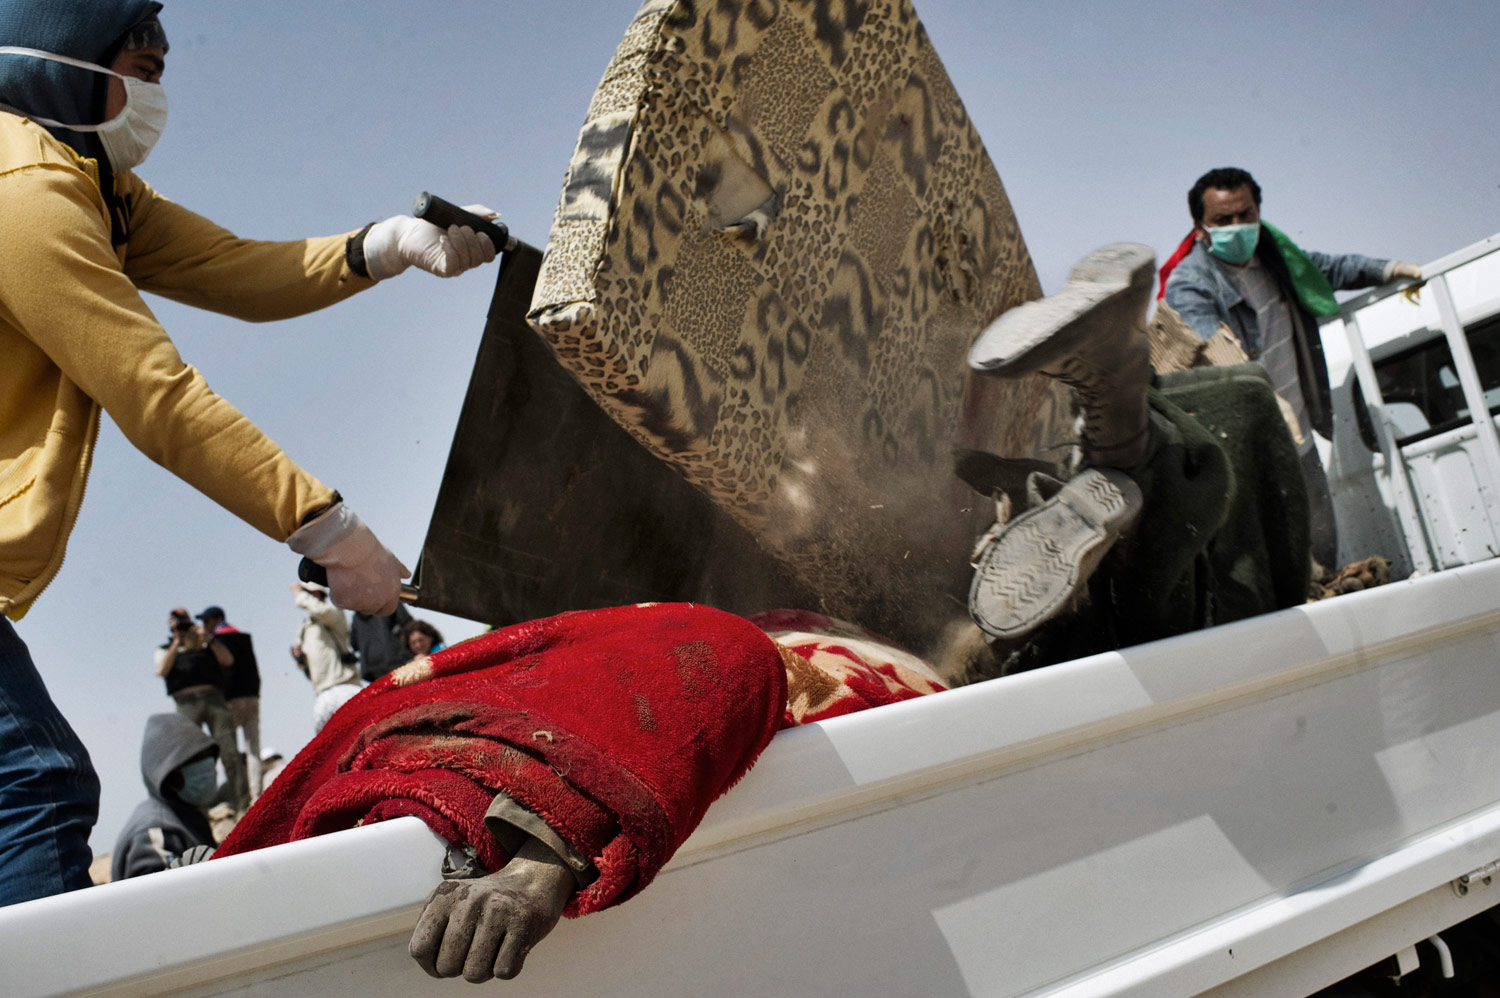 Libyan rebels collect the bodies of dead Gaddafi soldiers killed during allied airstrikes, March 26, 2011.